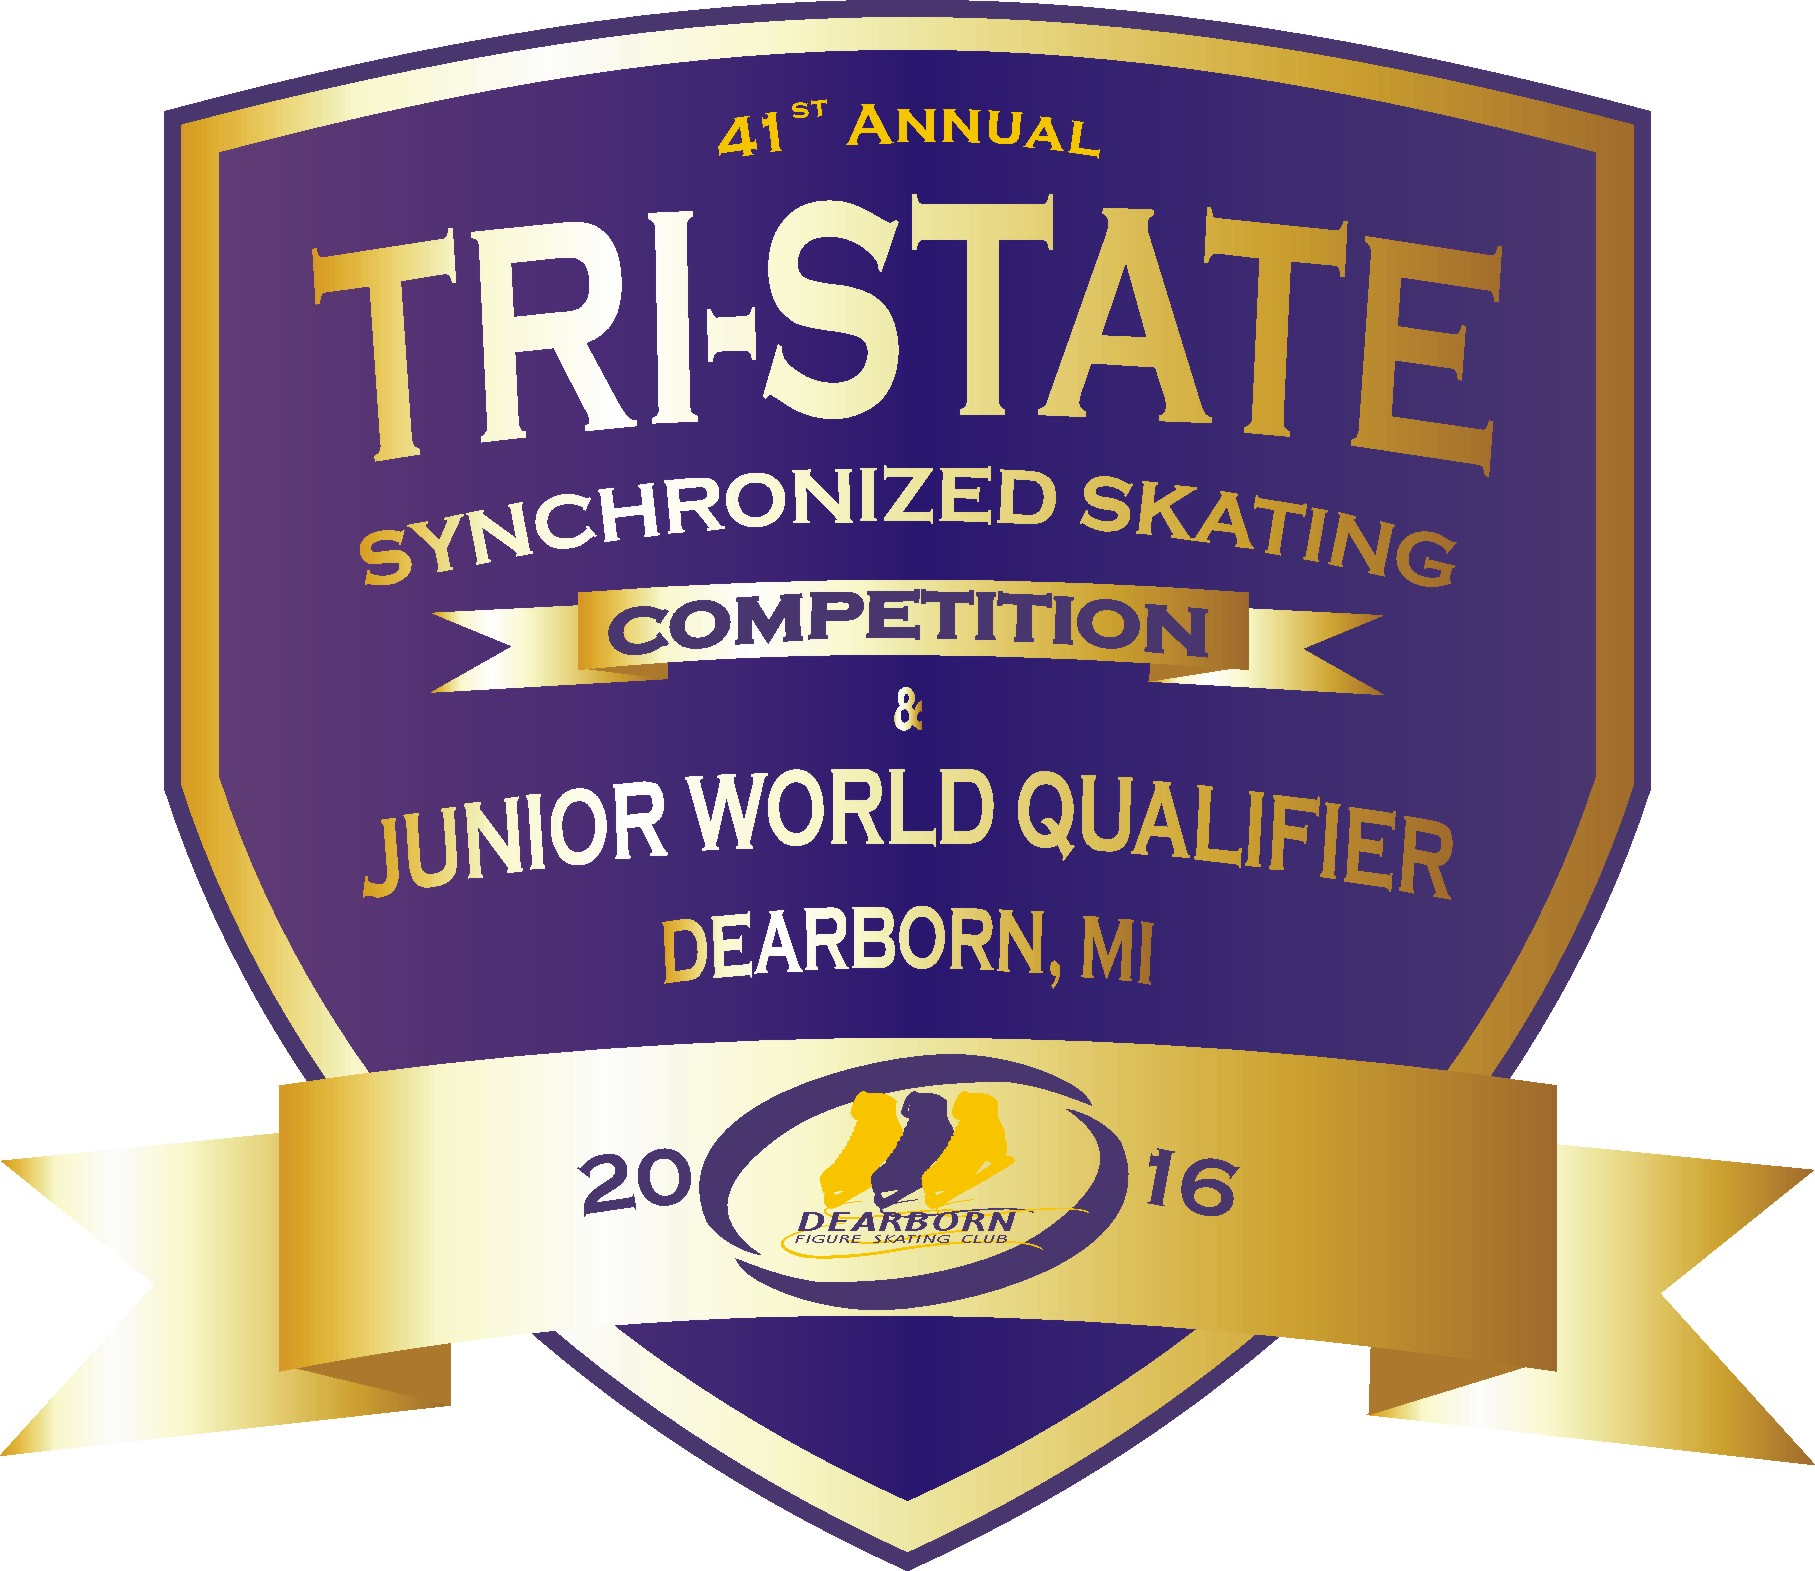 tristateCOMPETITIONLogo